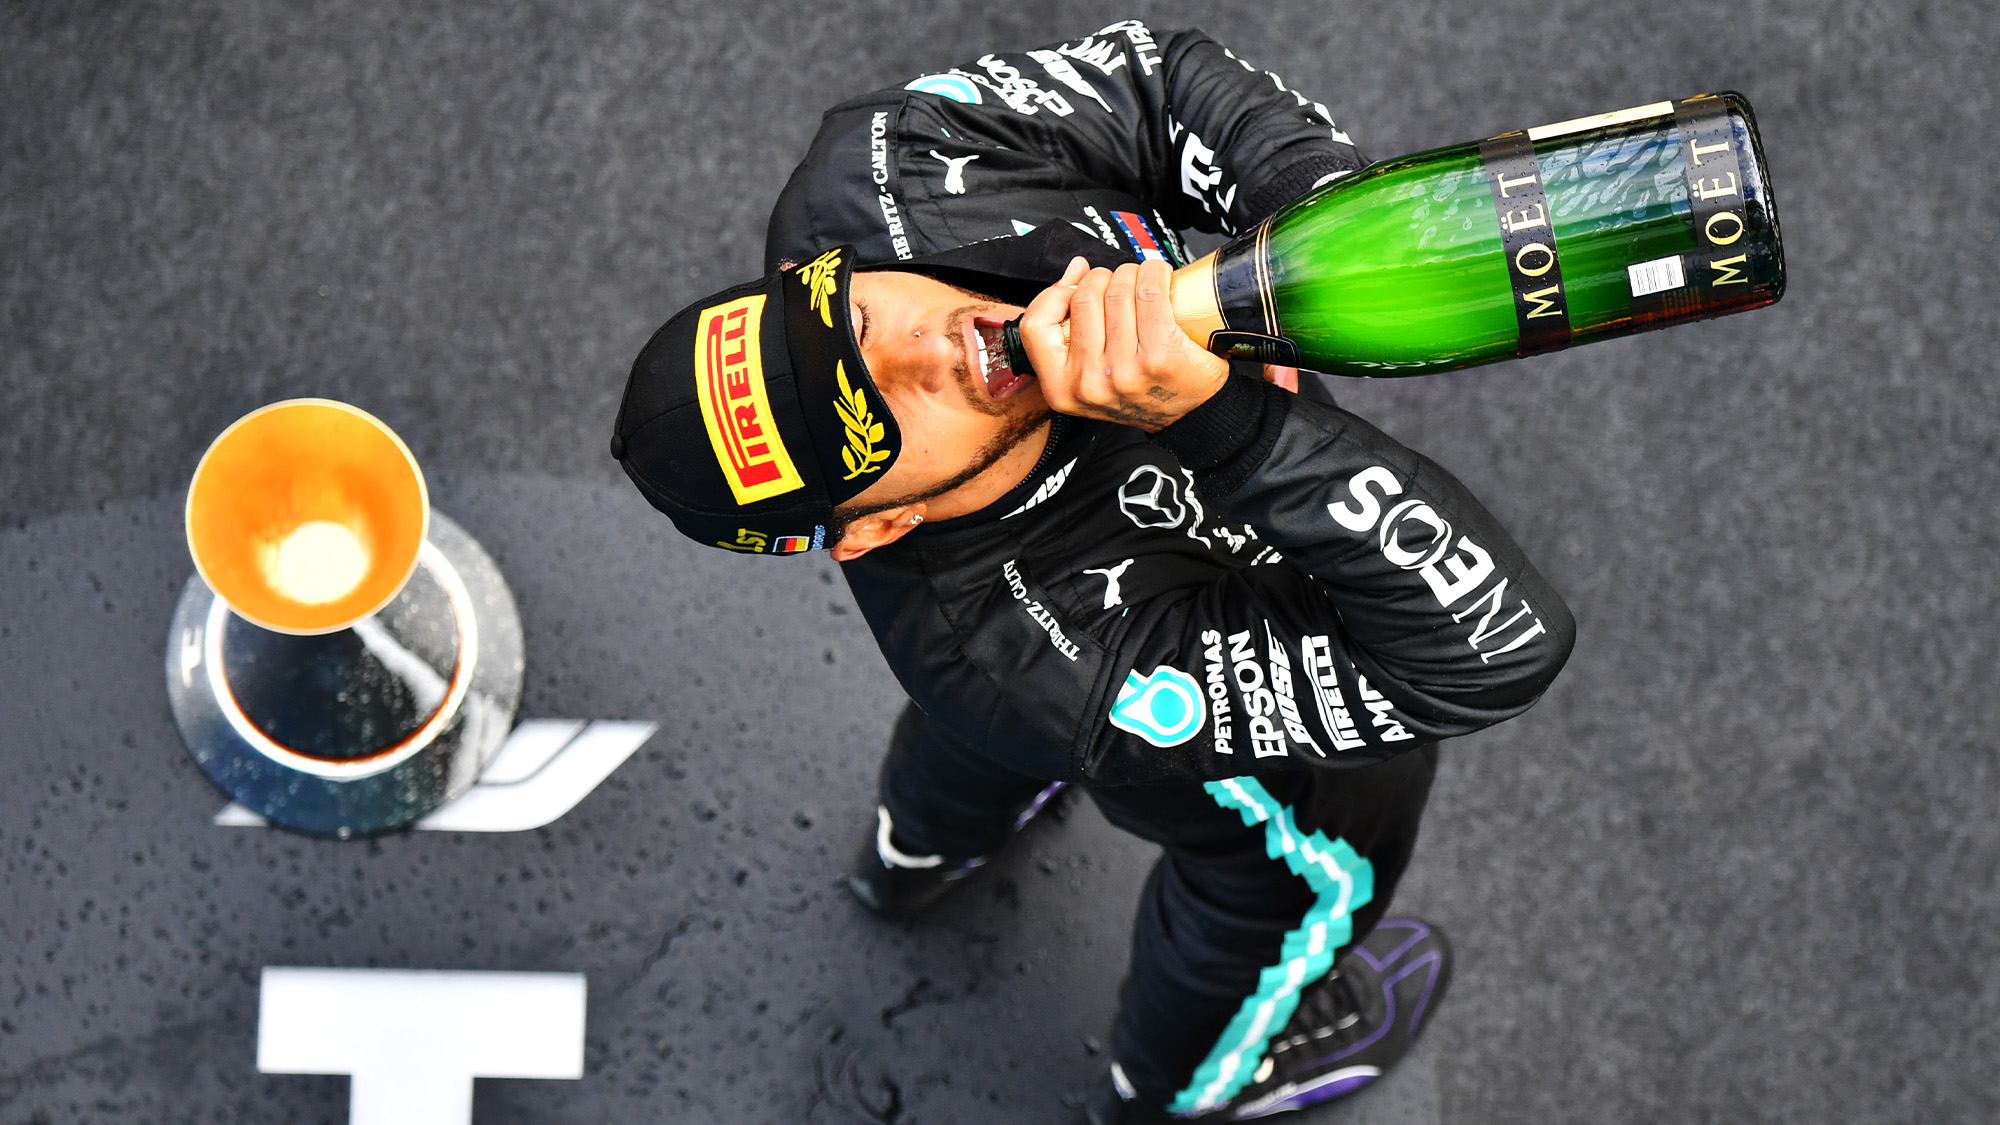 Lewis Hamilton drinks champagne on the podium after winning a record equalling 91st grand prix at the Nurburgring